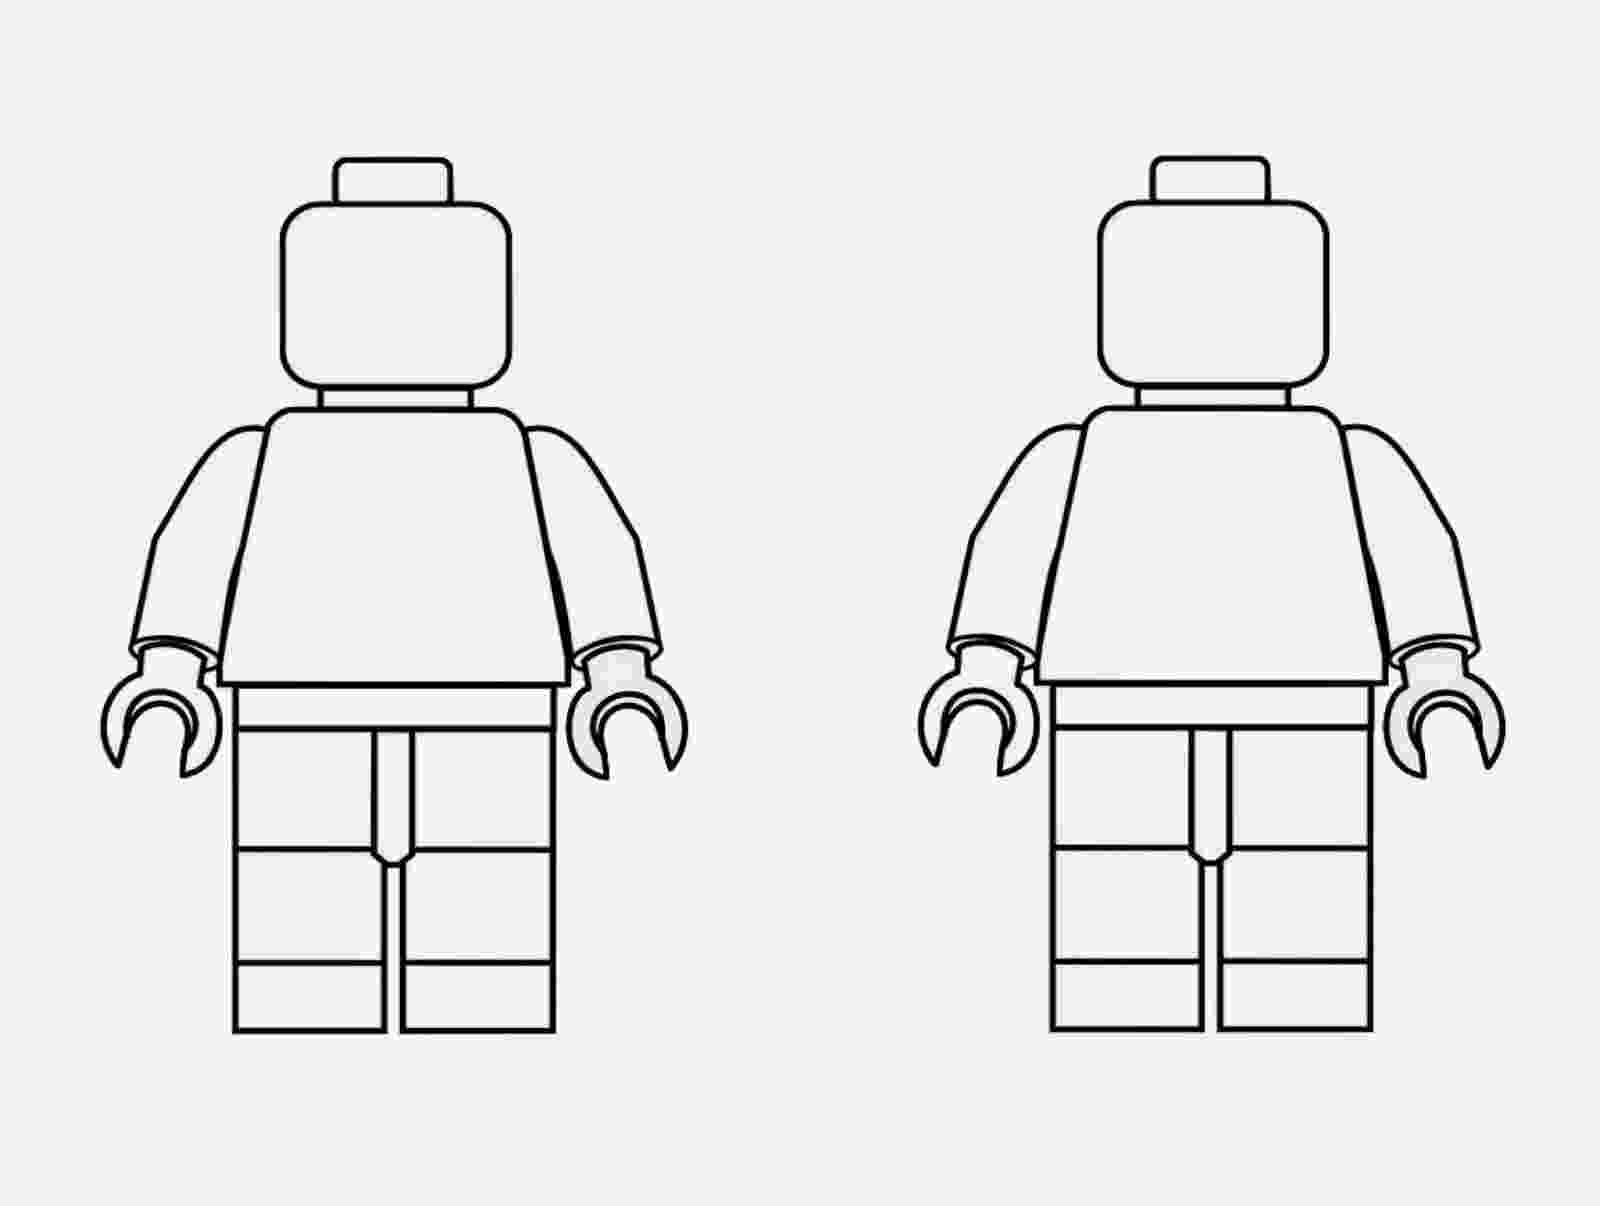 lego man coloring pages lego man in cowboy hat coloring page free printable coloring pages lego man